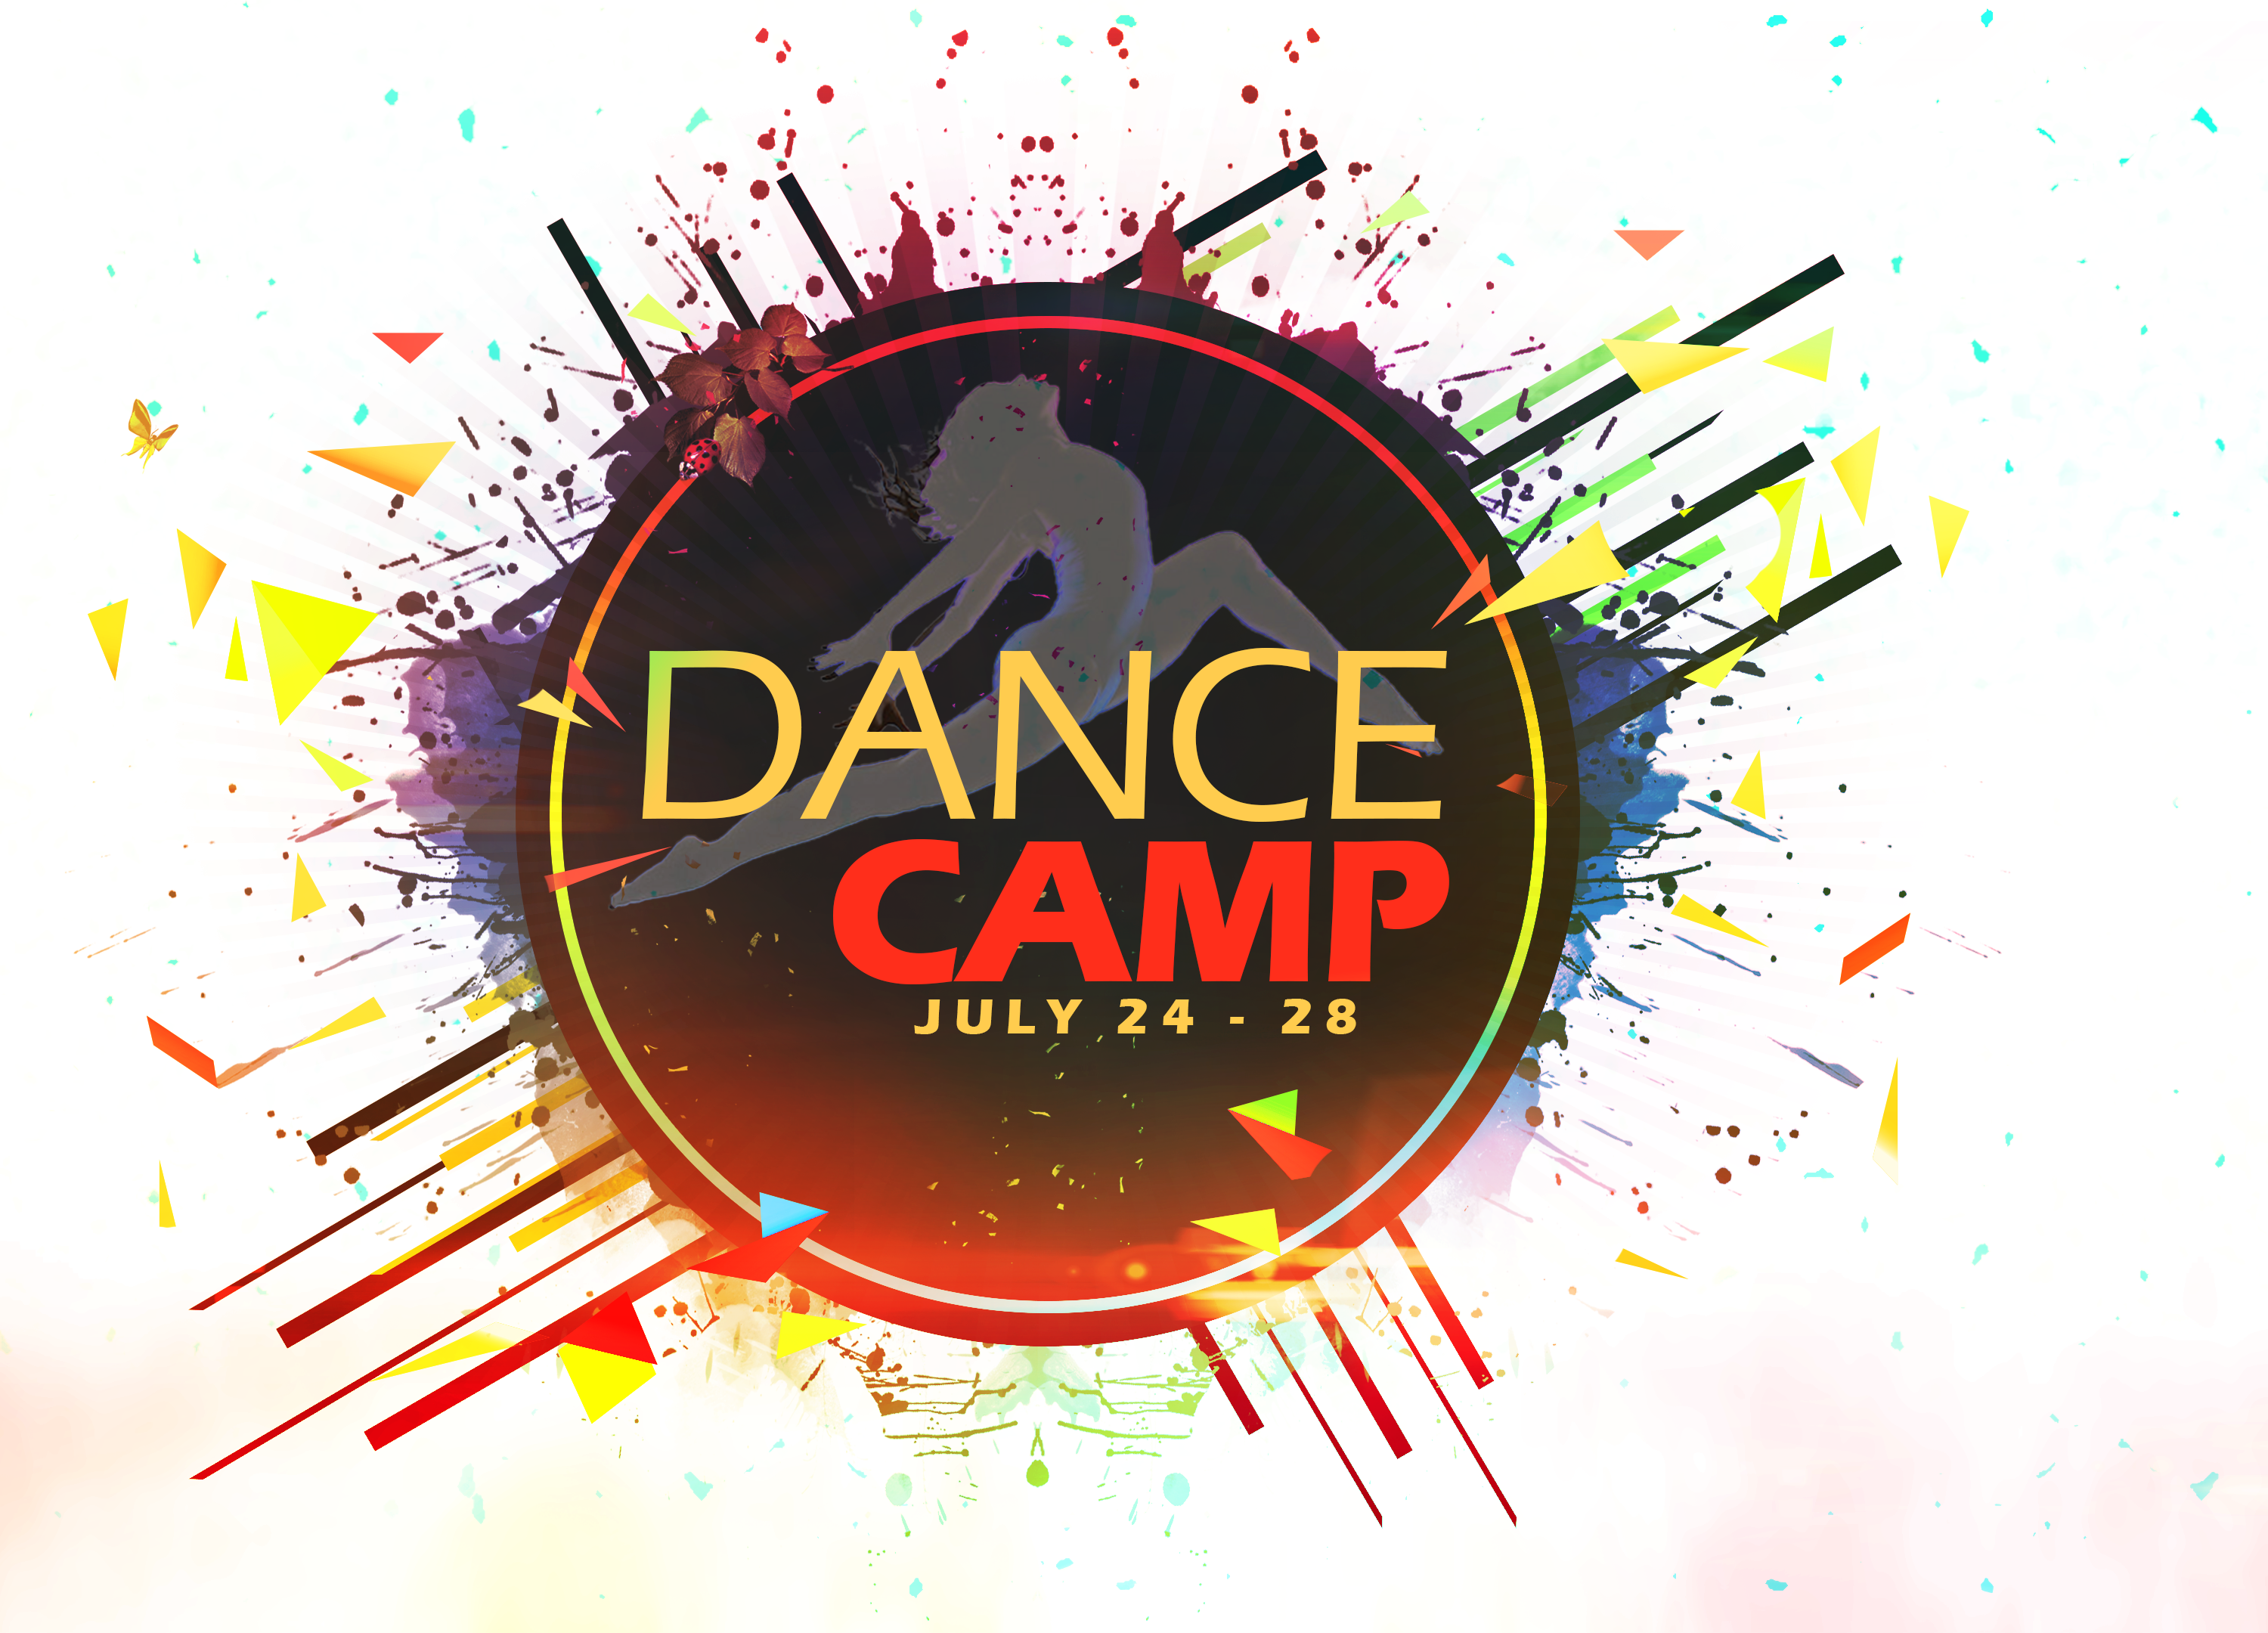 Dance camp logo 2017